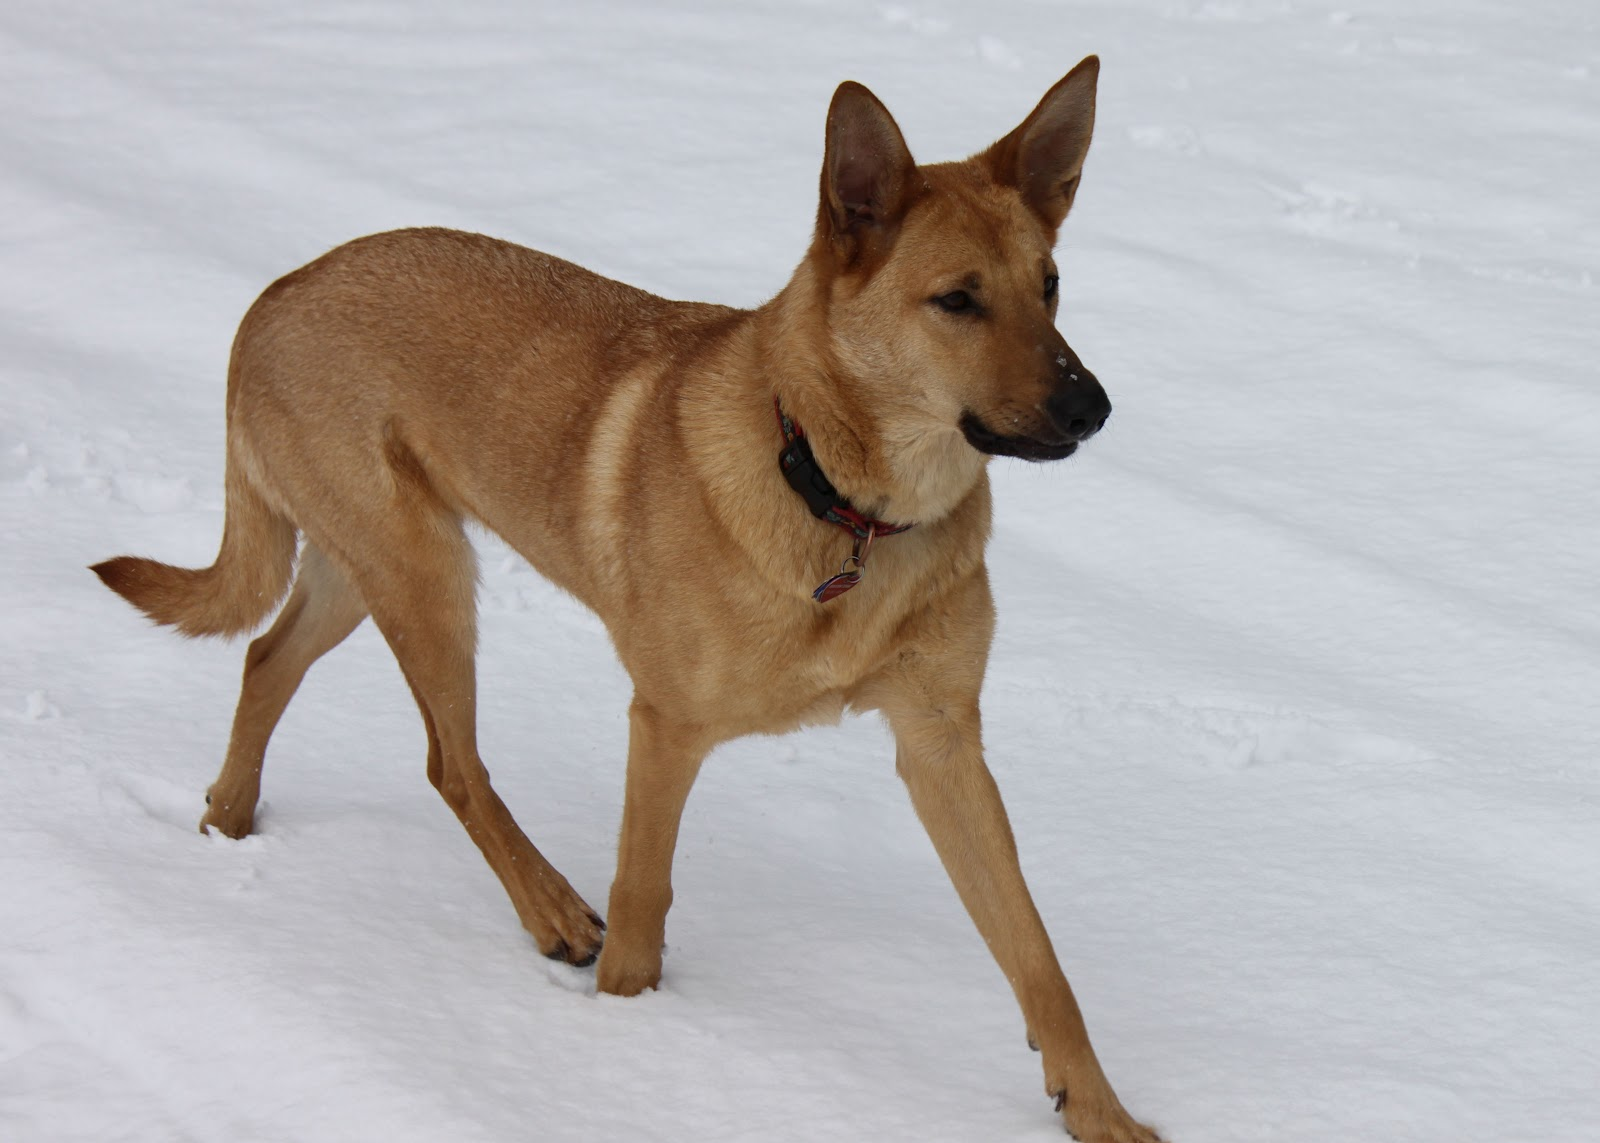 Chinook Dog: Origins, Characteristics, and Personality